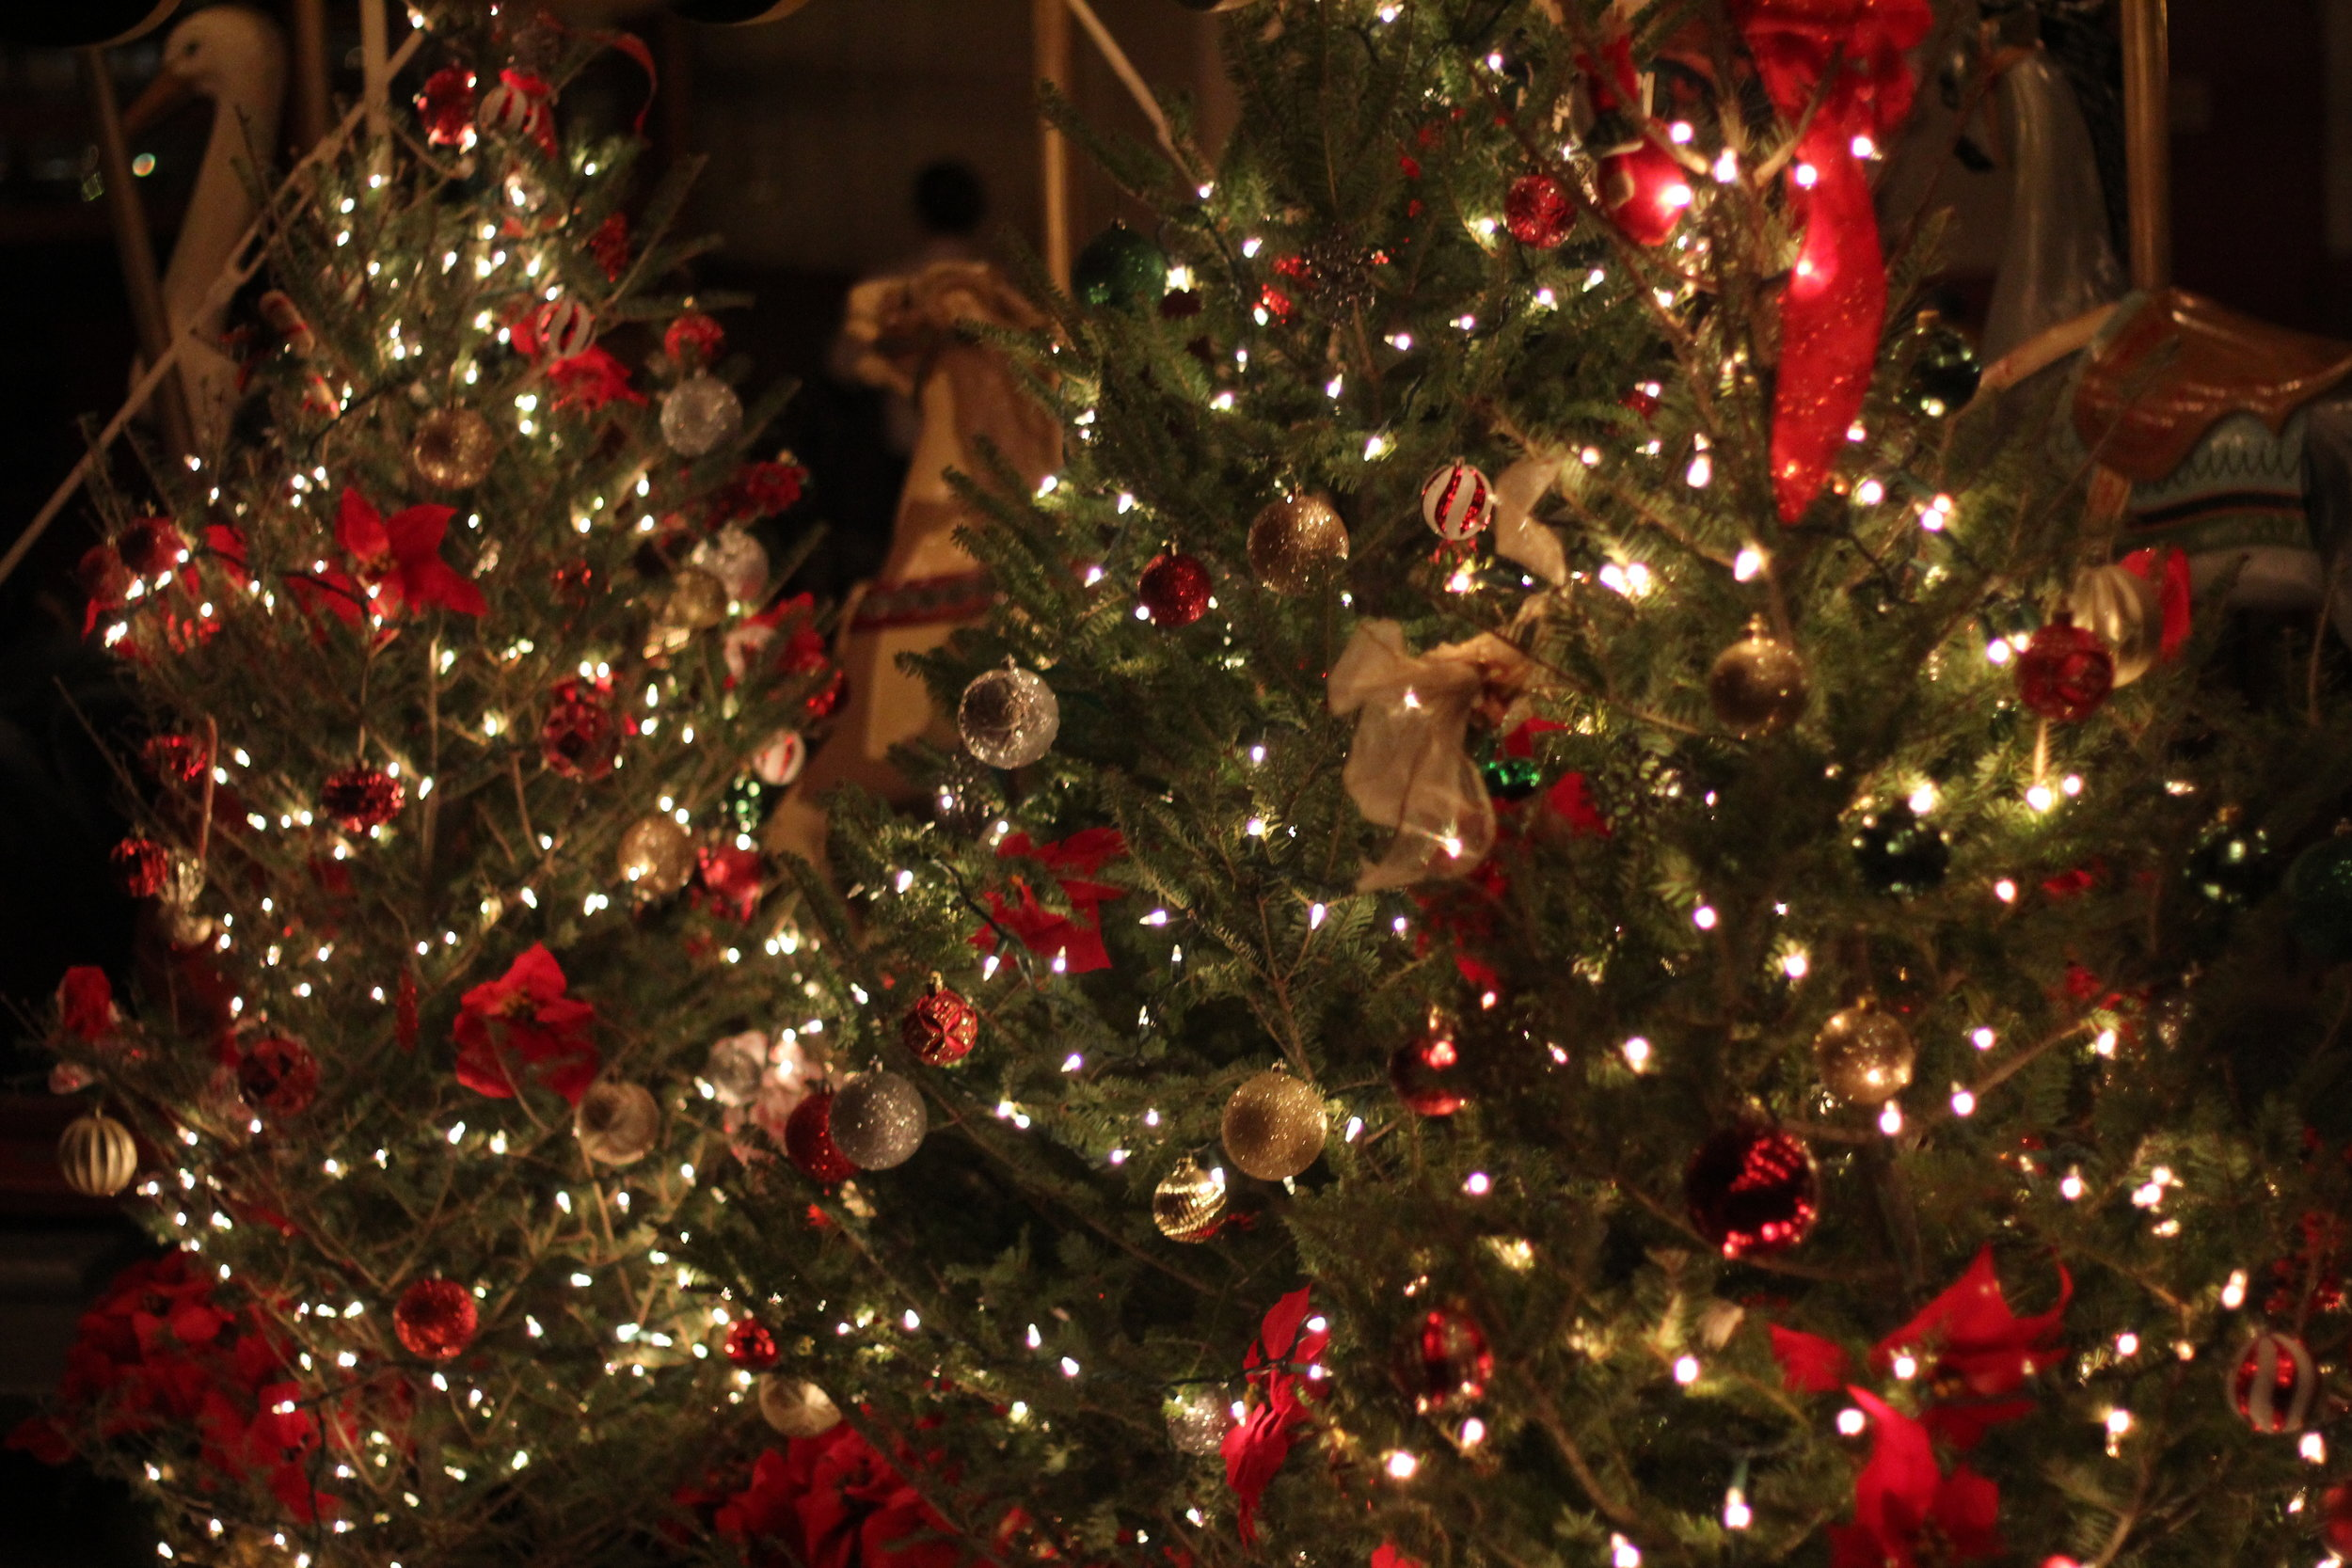 Christmas Decor at Holiday Nights at Greenfield Village